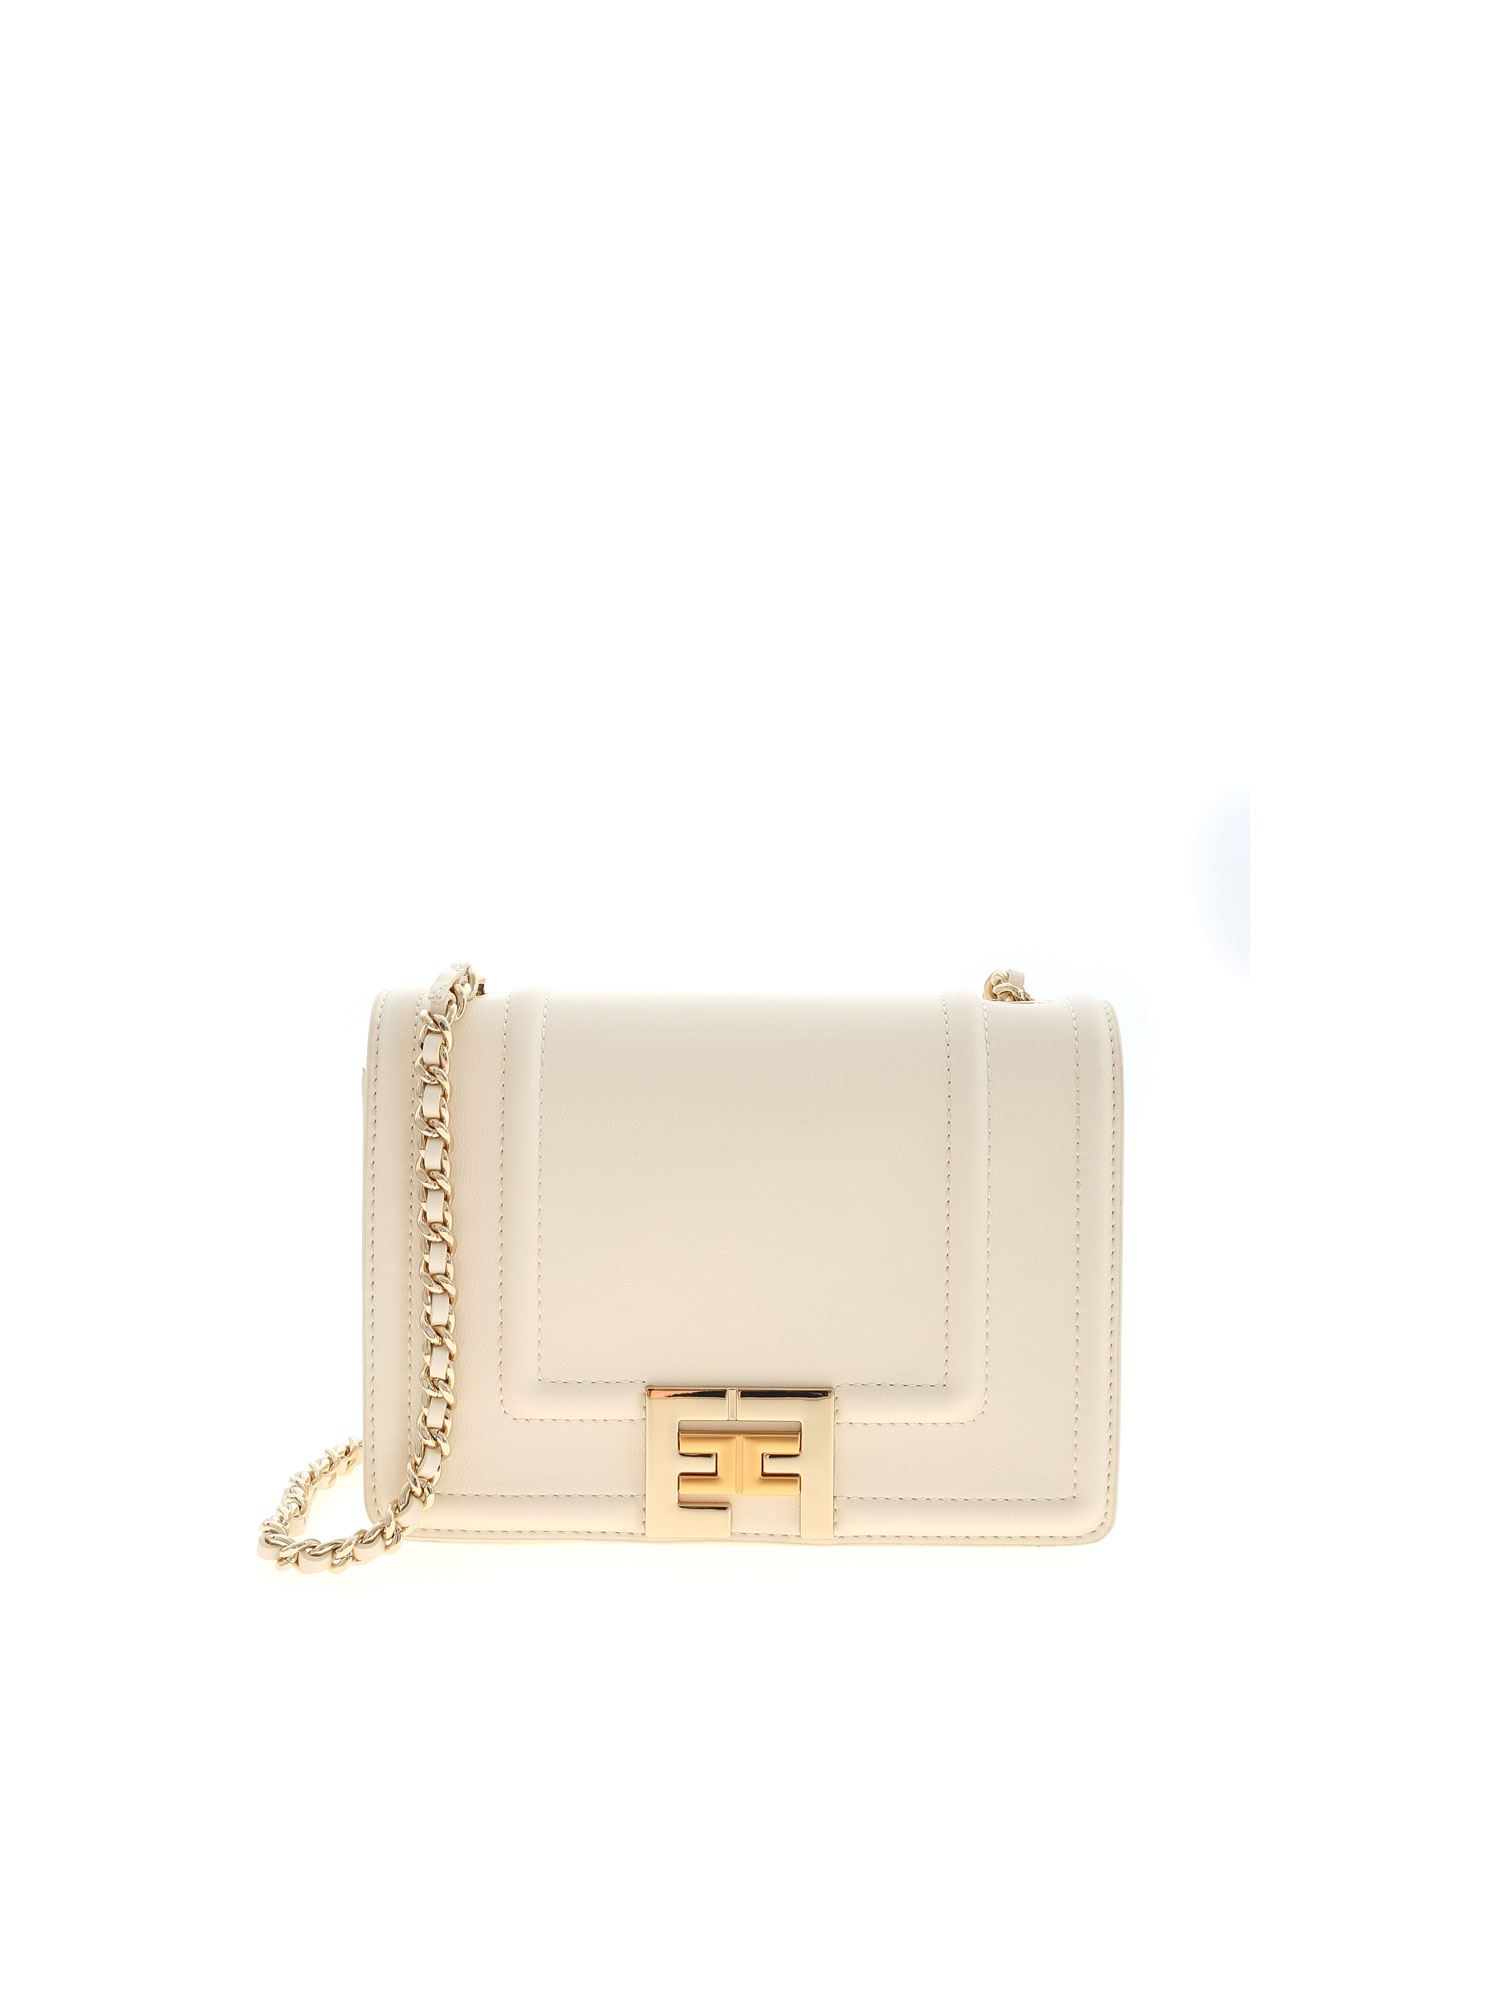 Elisabetta Franchi GOLDEN METAL LOGO BAG IN IVORY COLOR